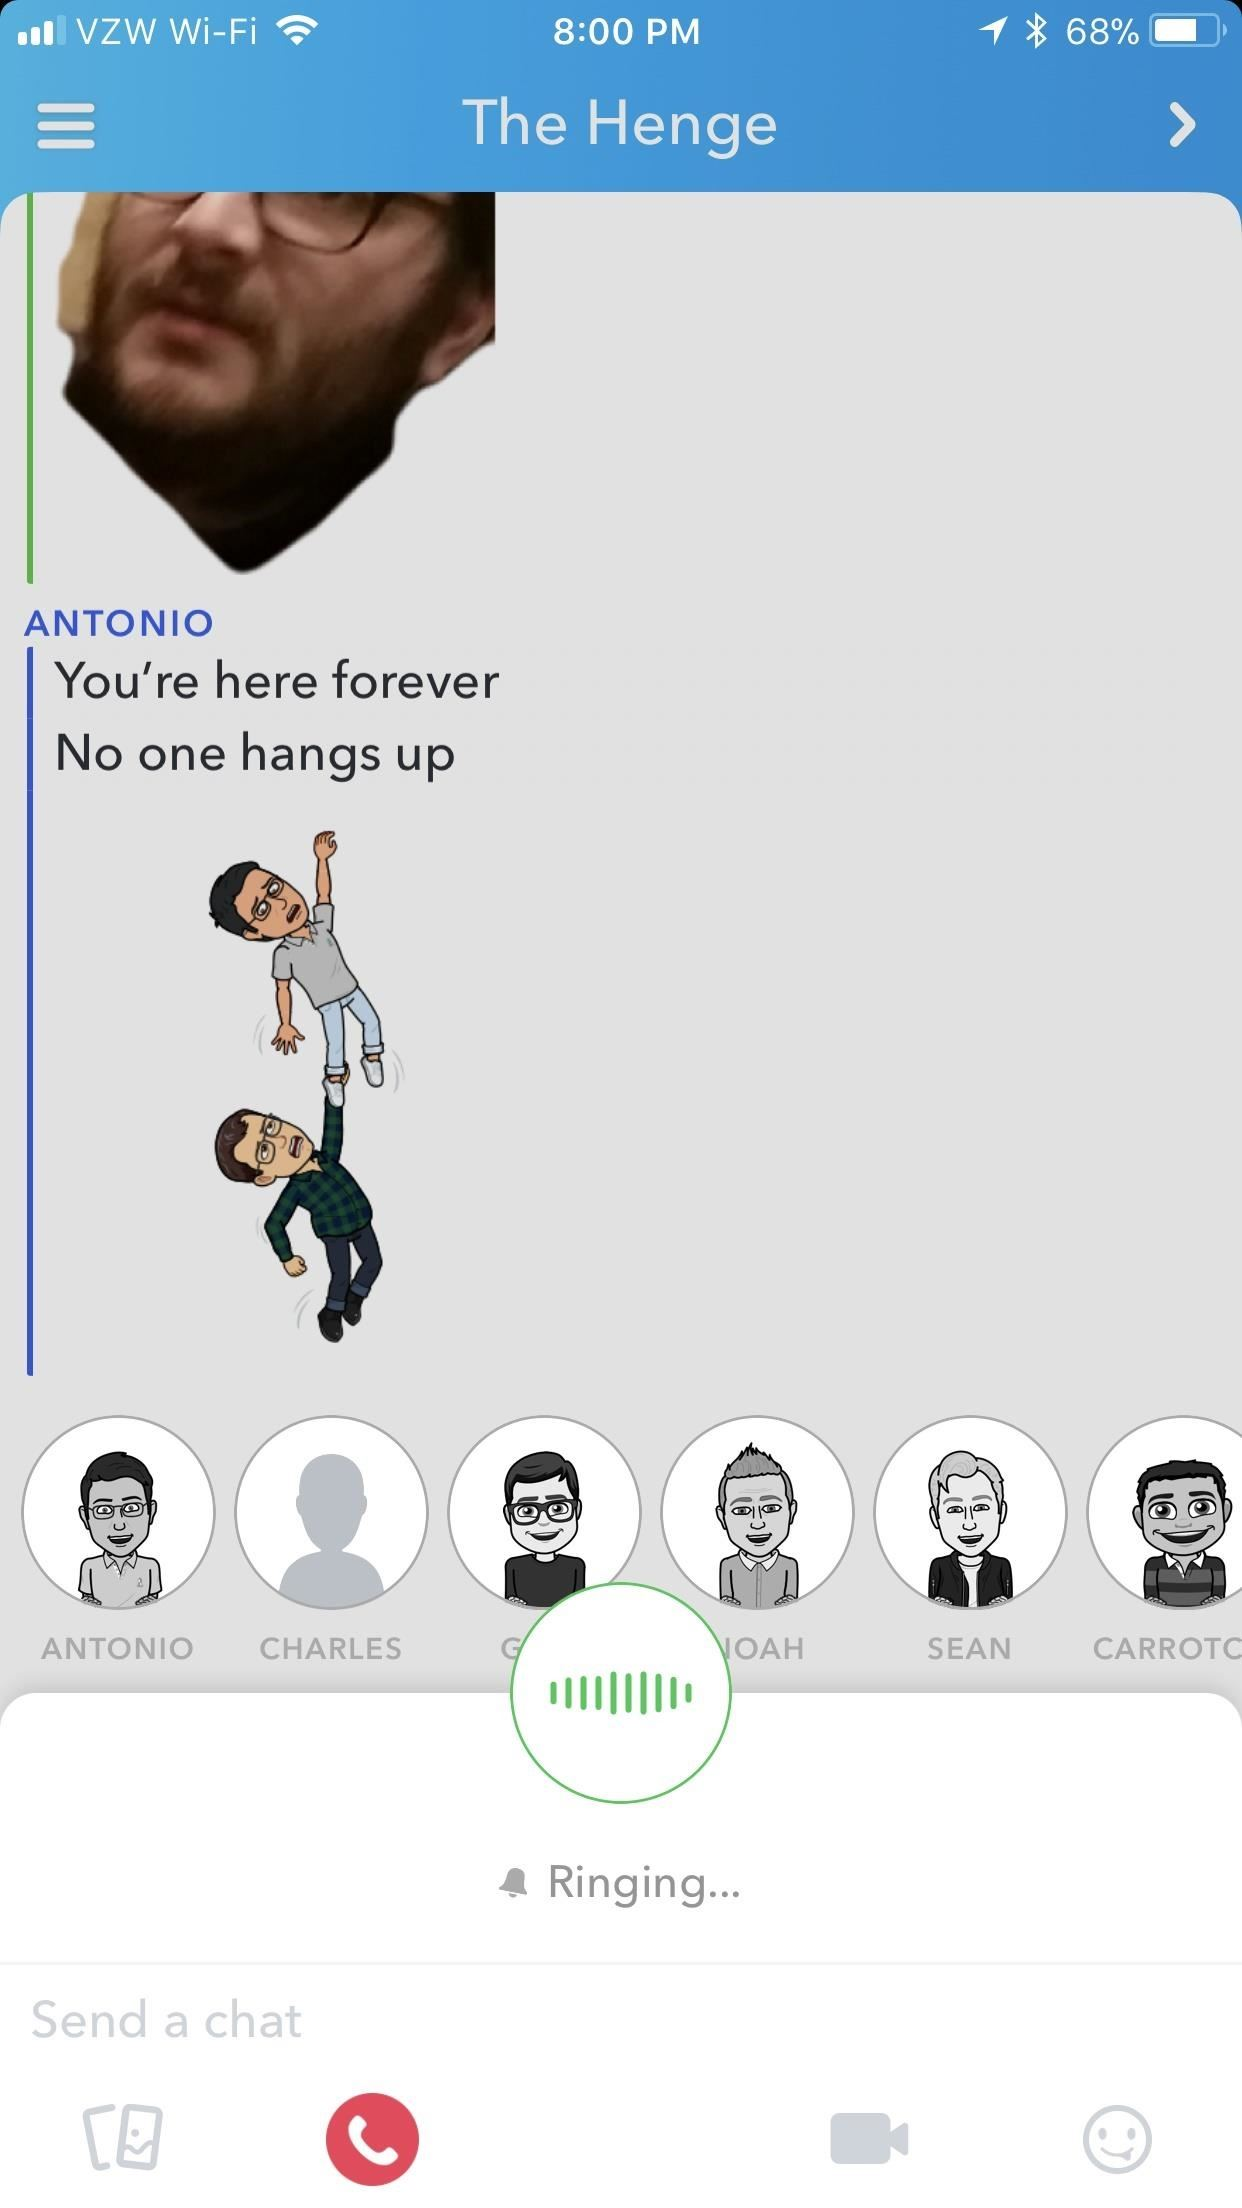 Snapchat 101: How to Audio & Video Chat with Multiple Users at the Same Time in Groups